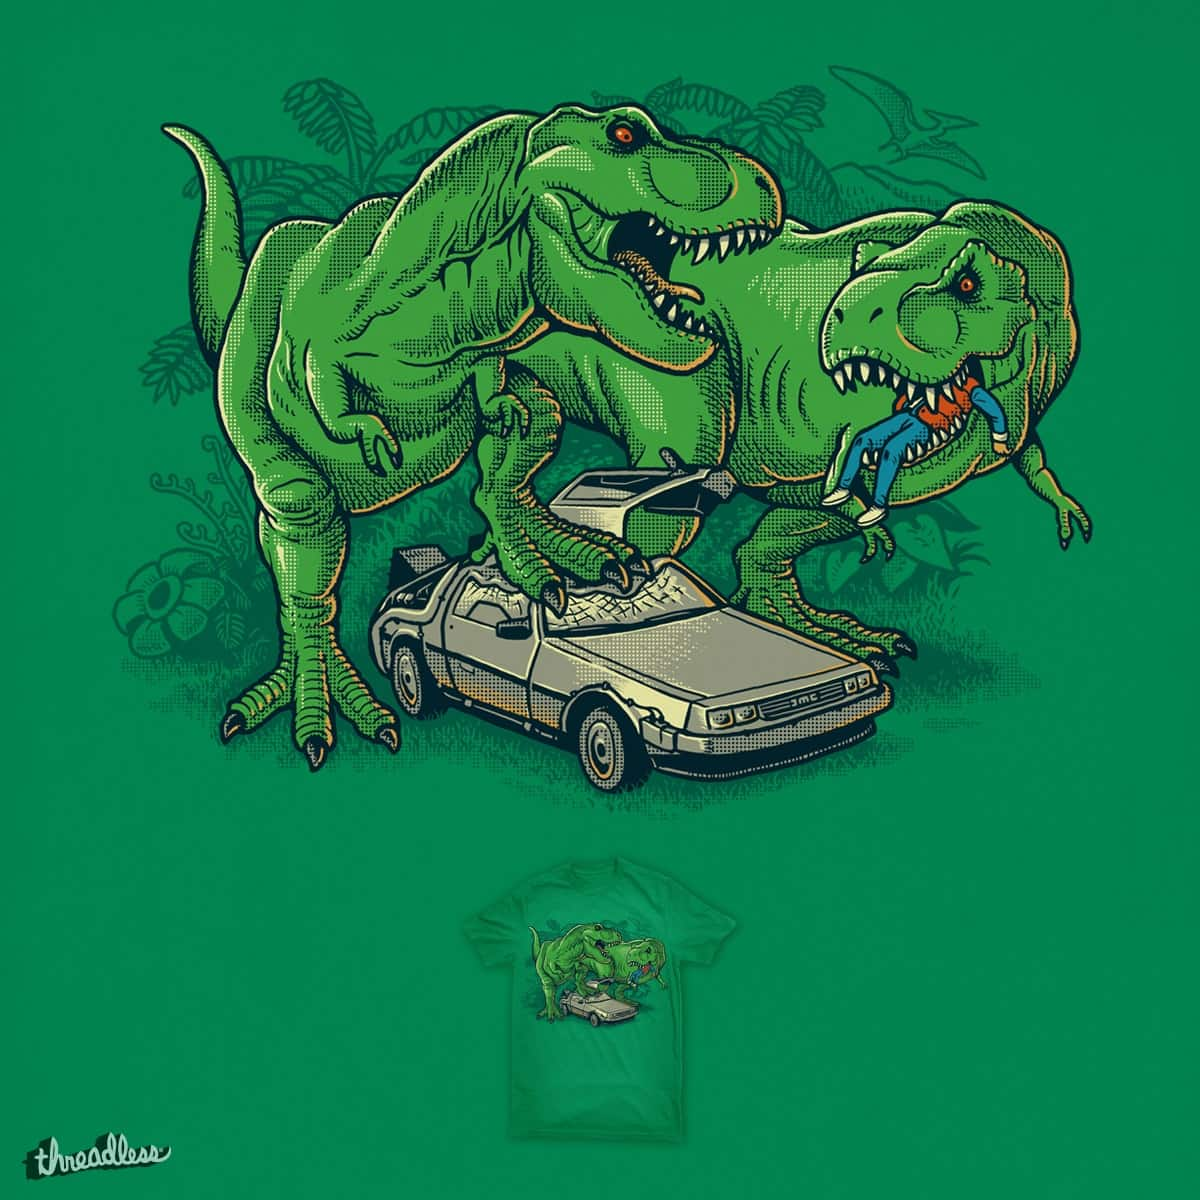 The End Of Time Travel by ben chen on Threadless